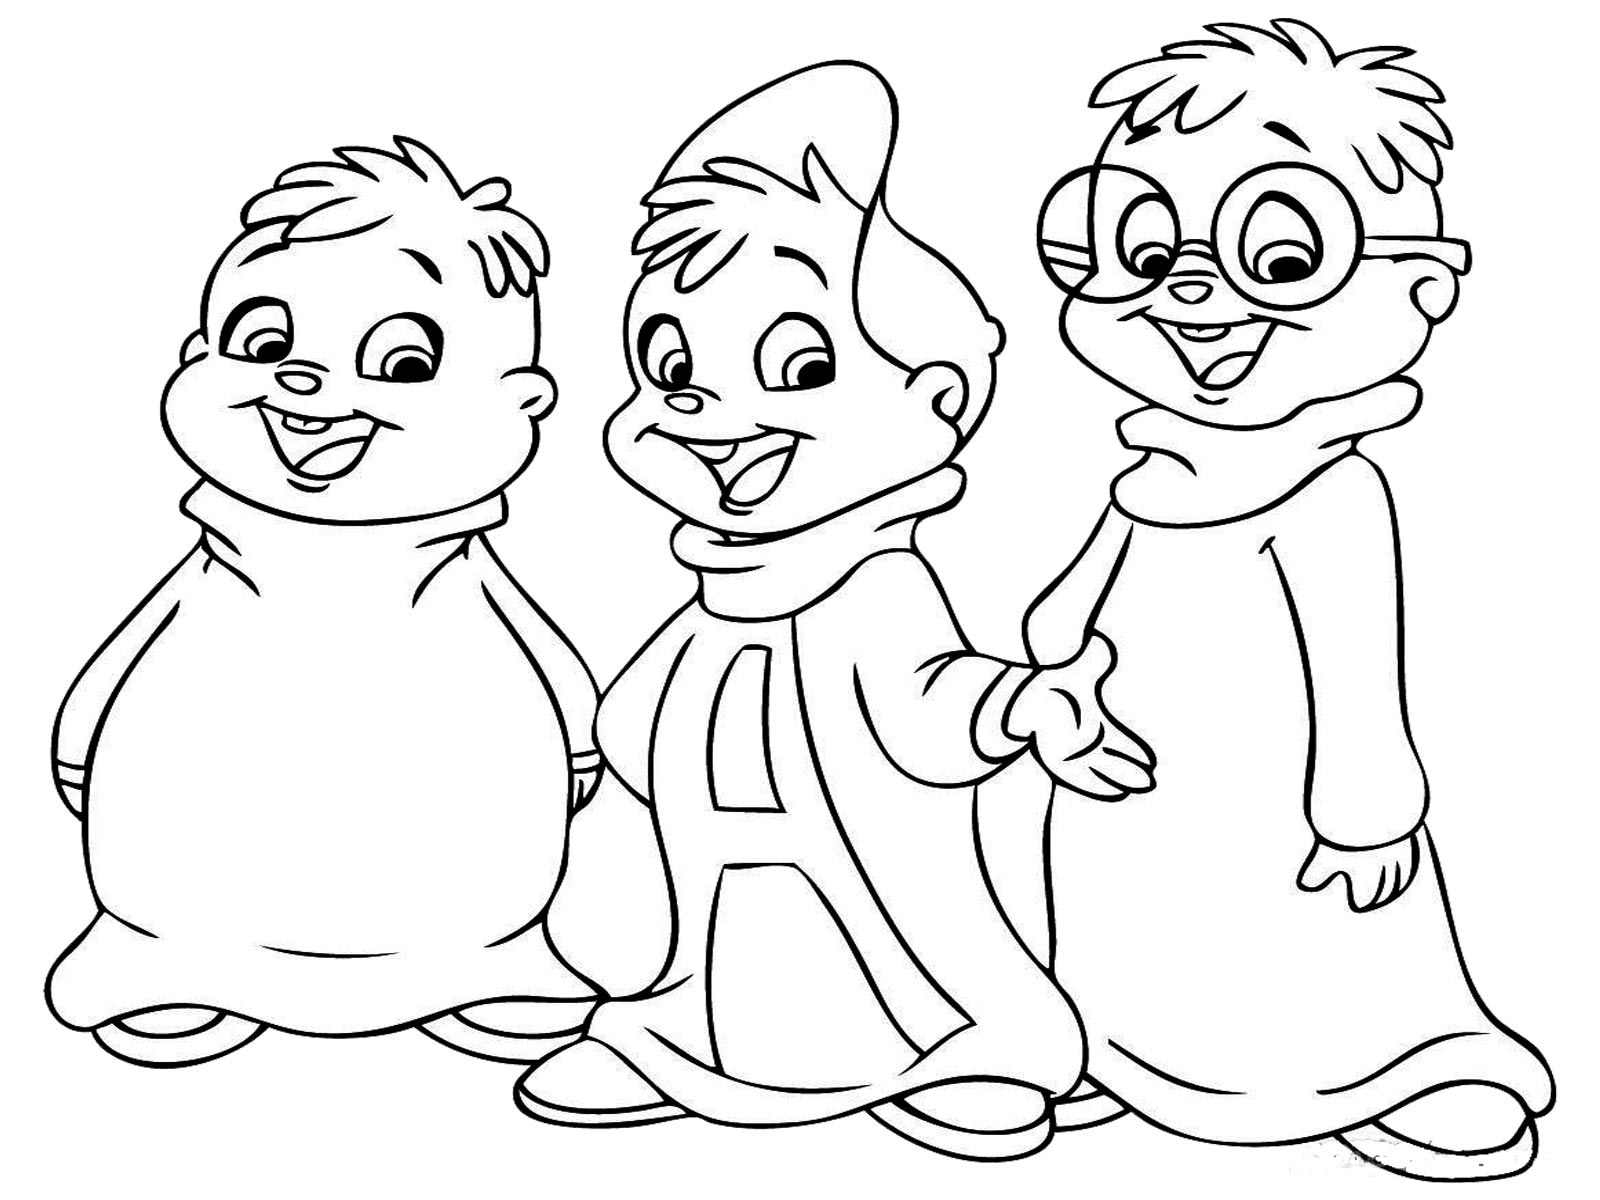 90s-coloring-page-0023-q1